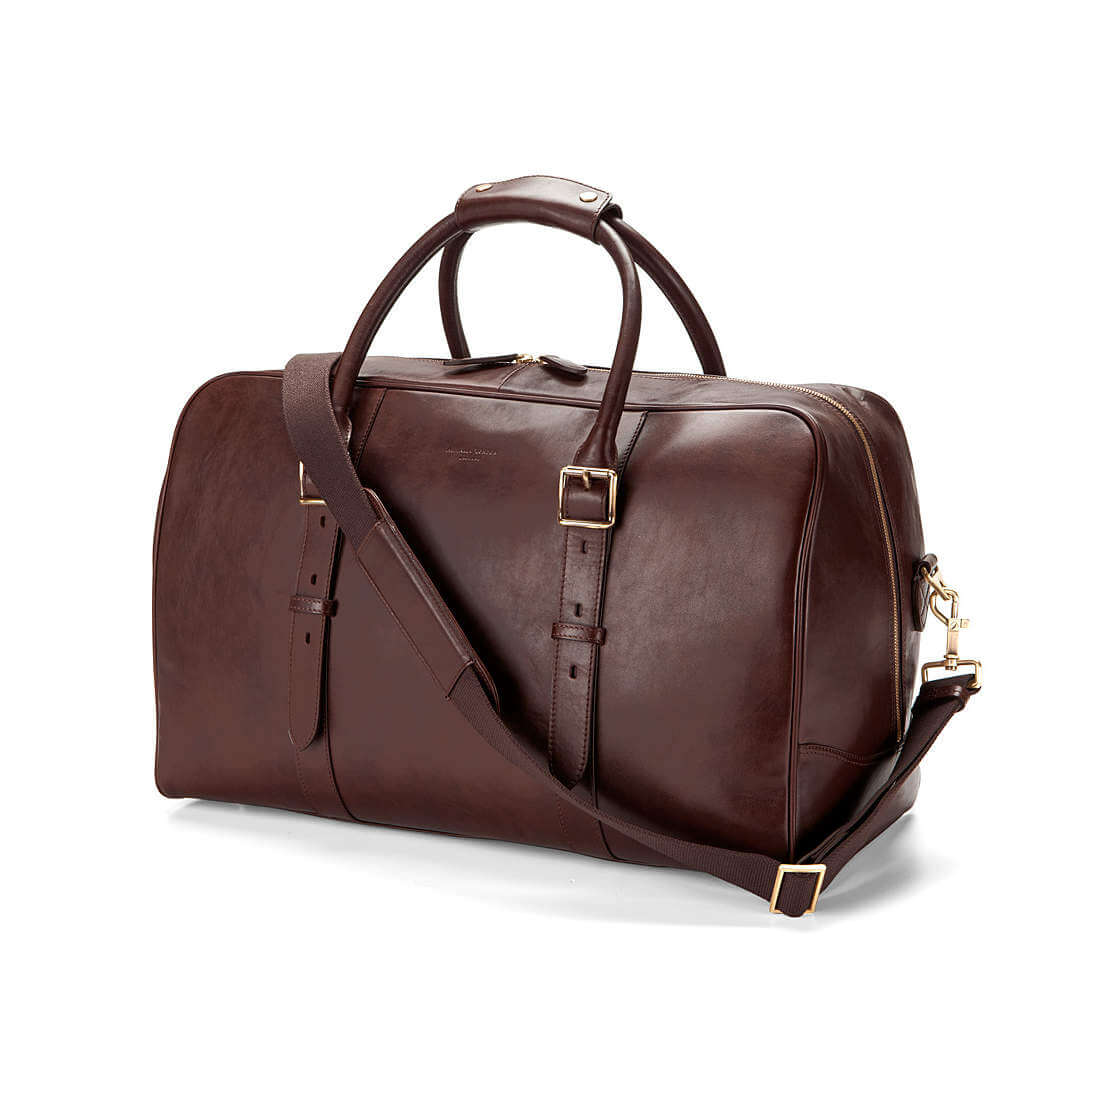 Luxury Travel Gifts for Him Aspinal of London Harrison Weekender Bag